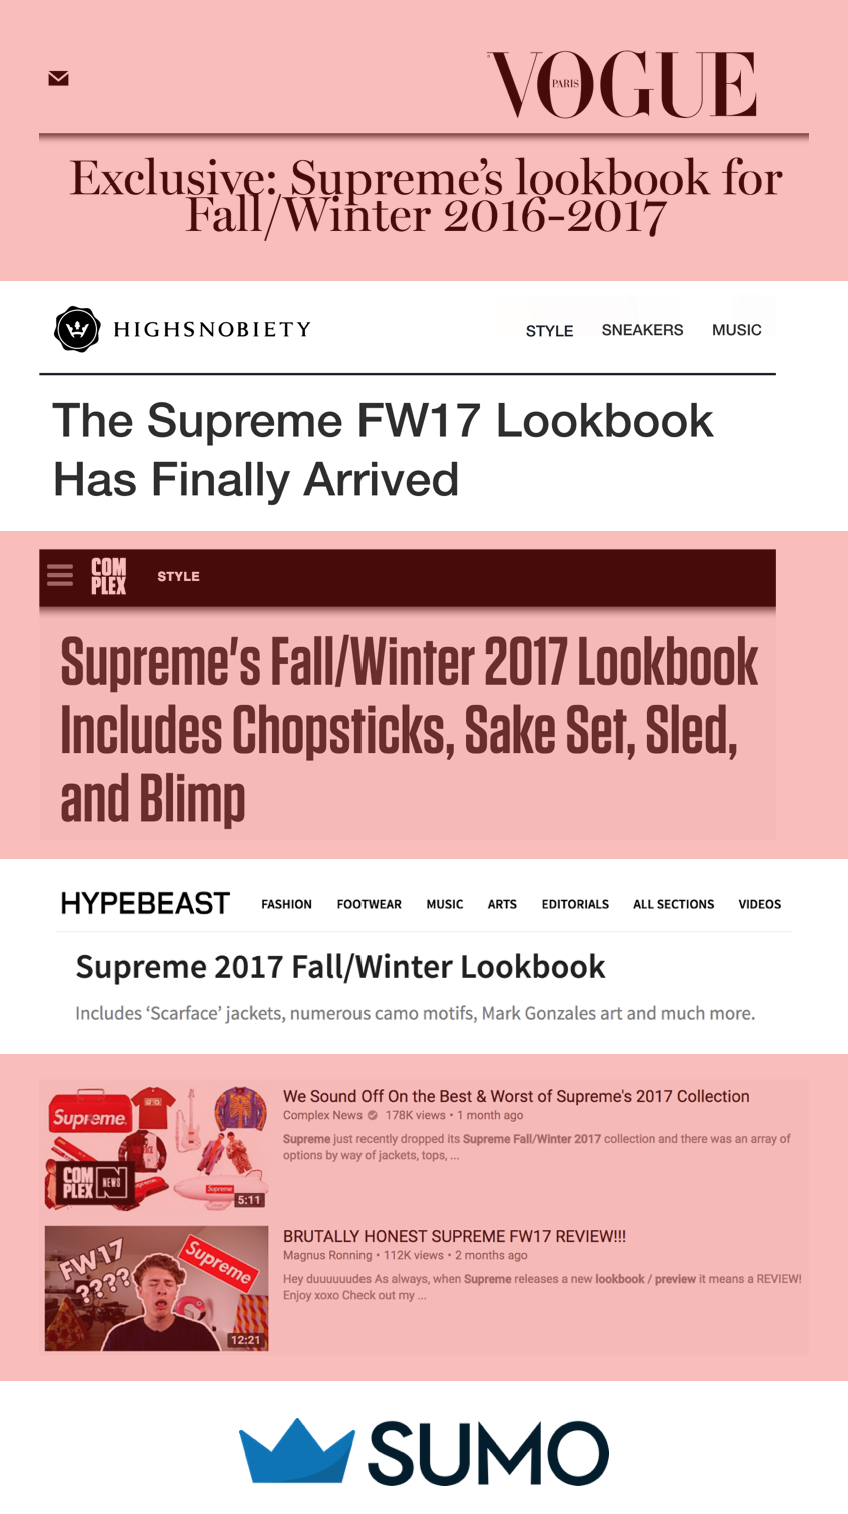 Supreme lookbook turinio strategija